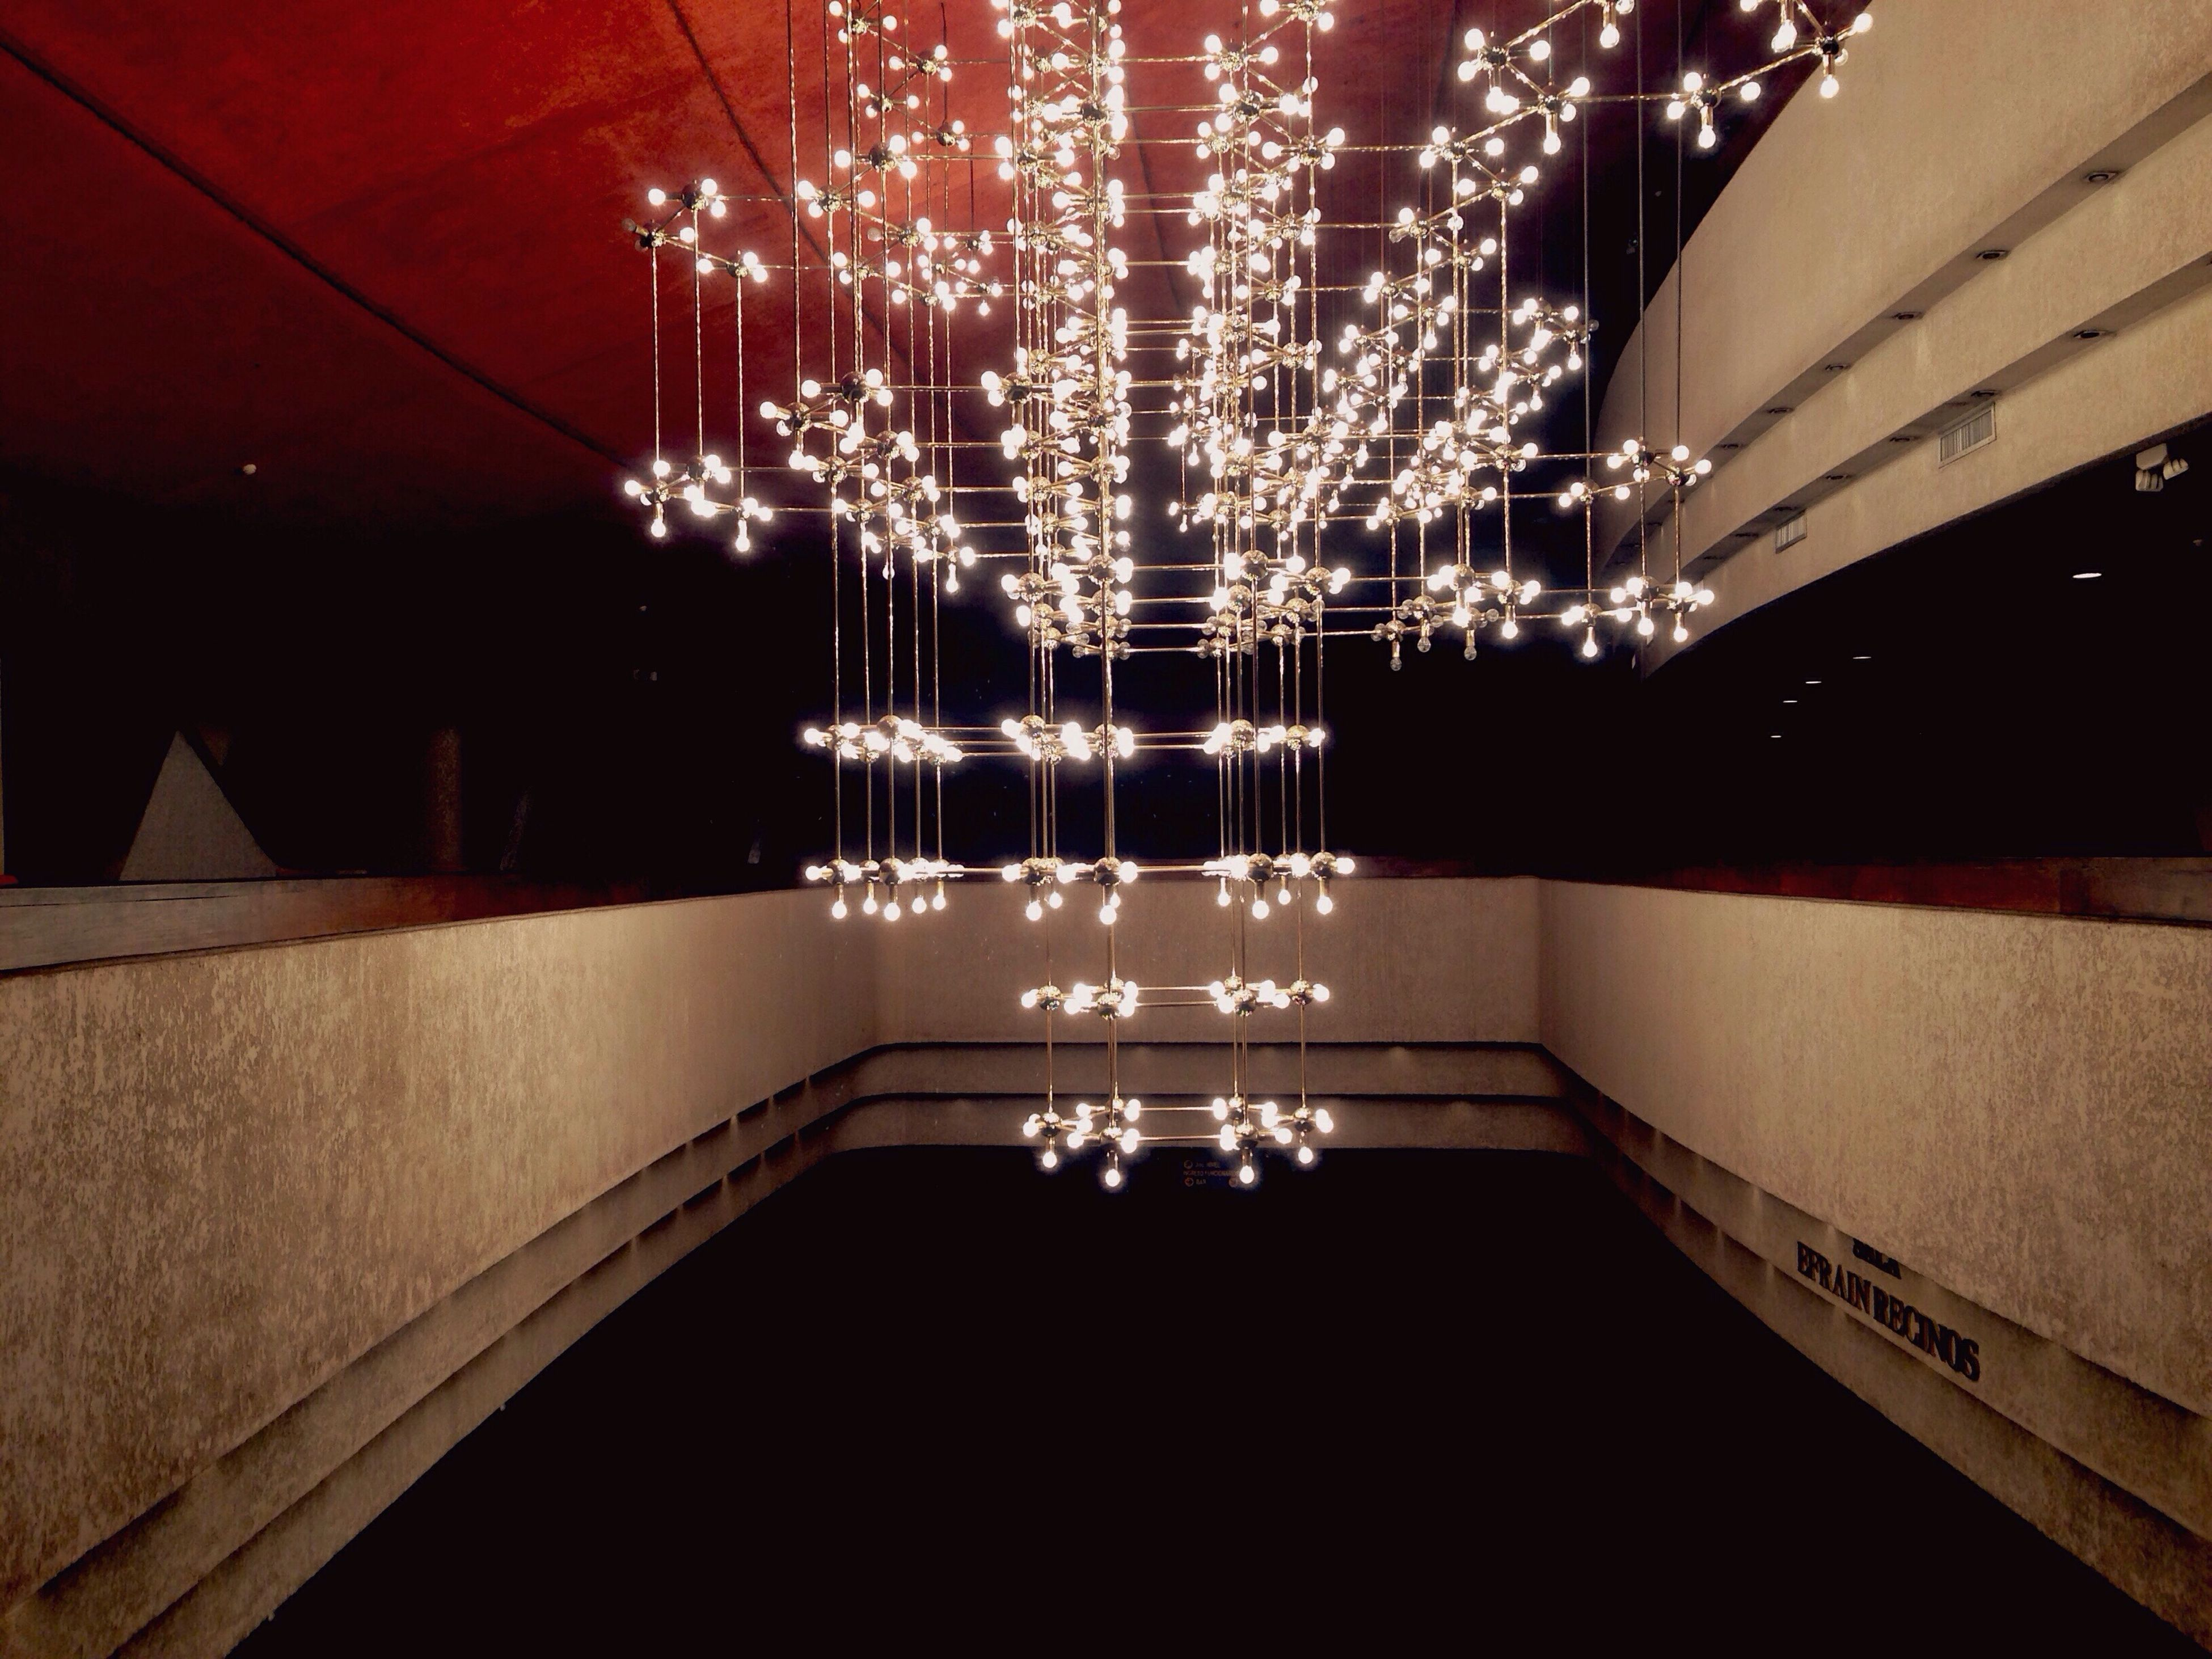 illuminated, architecture, indoors, built structure, no people, modern, water, night, close-up